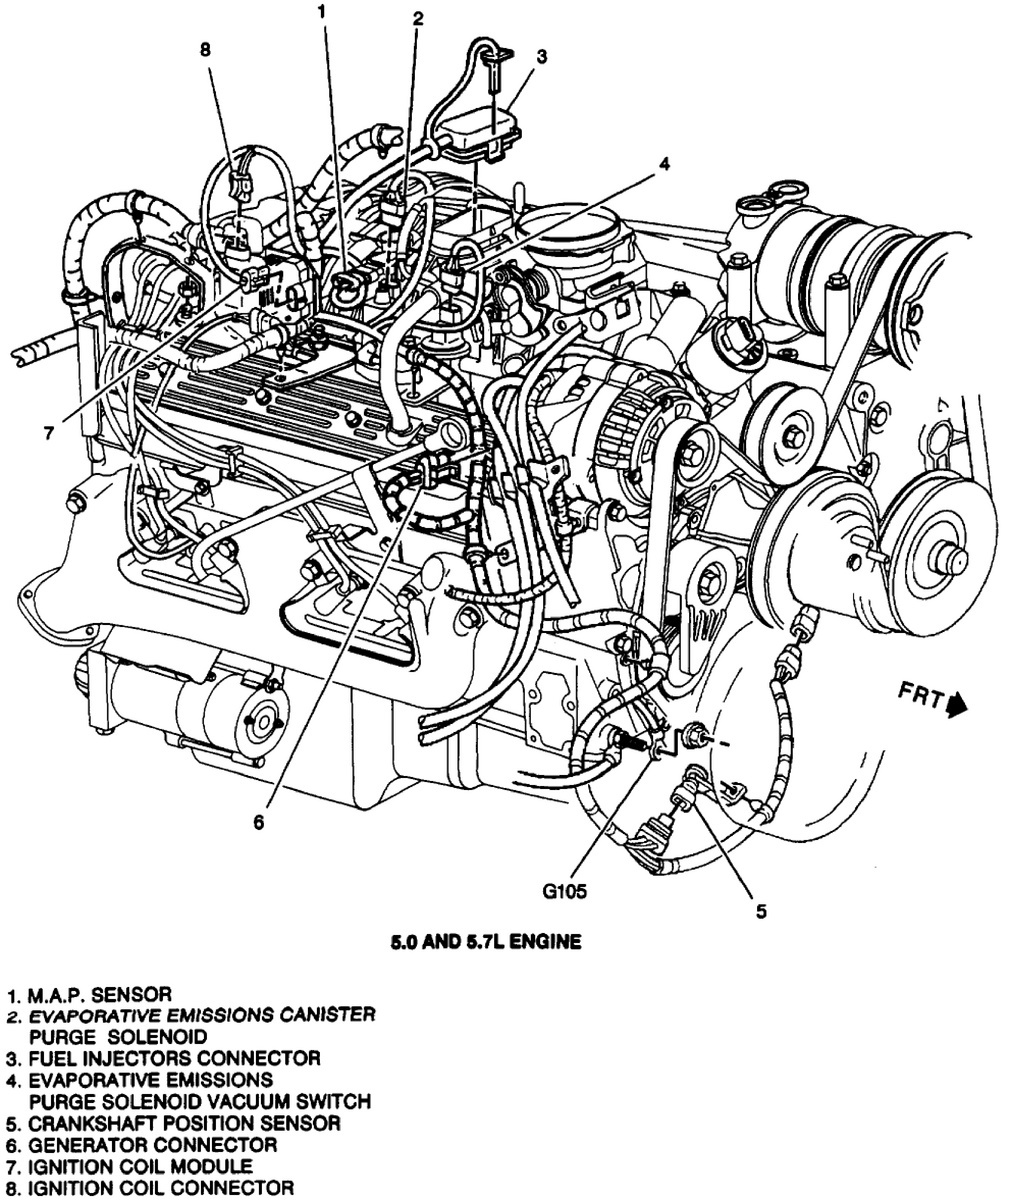 94 chevy 350 engine sensor diagram data wiring diagram update94 chevy 350 engine sensor diagram wiring schematic diagram 2005 chevy malibu engine diagram 94 chevy 350 engine sensor diagram